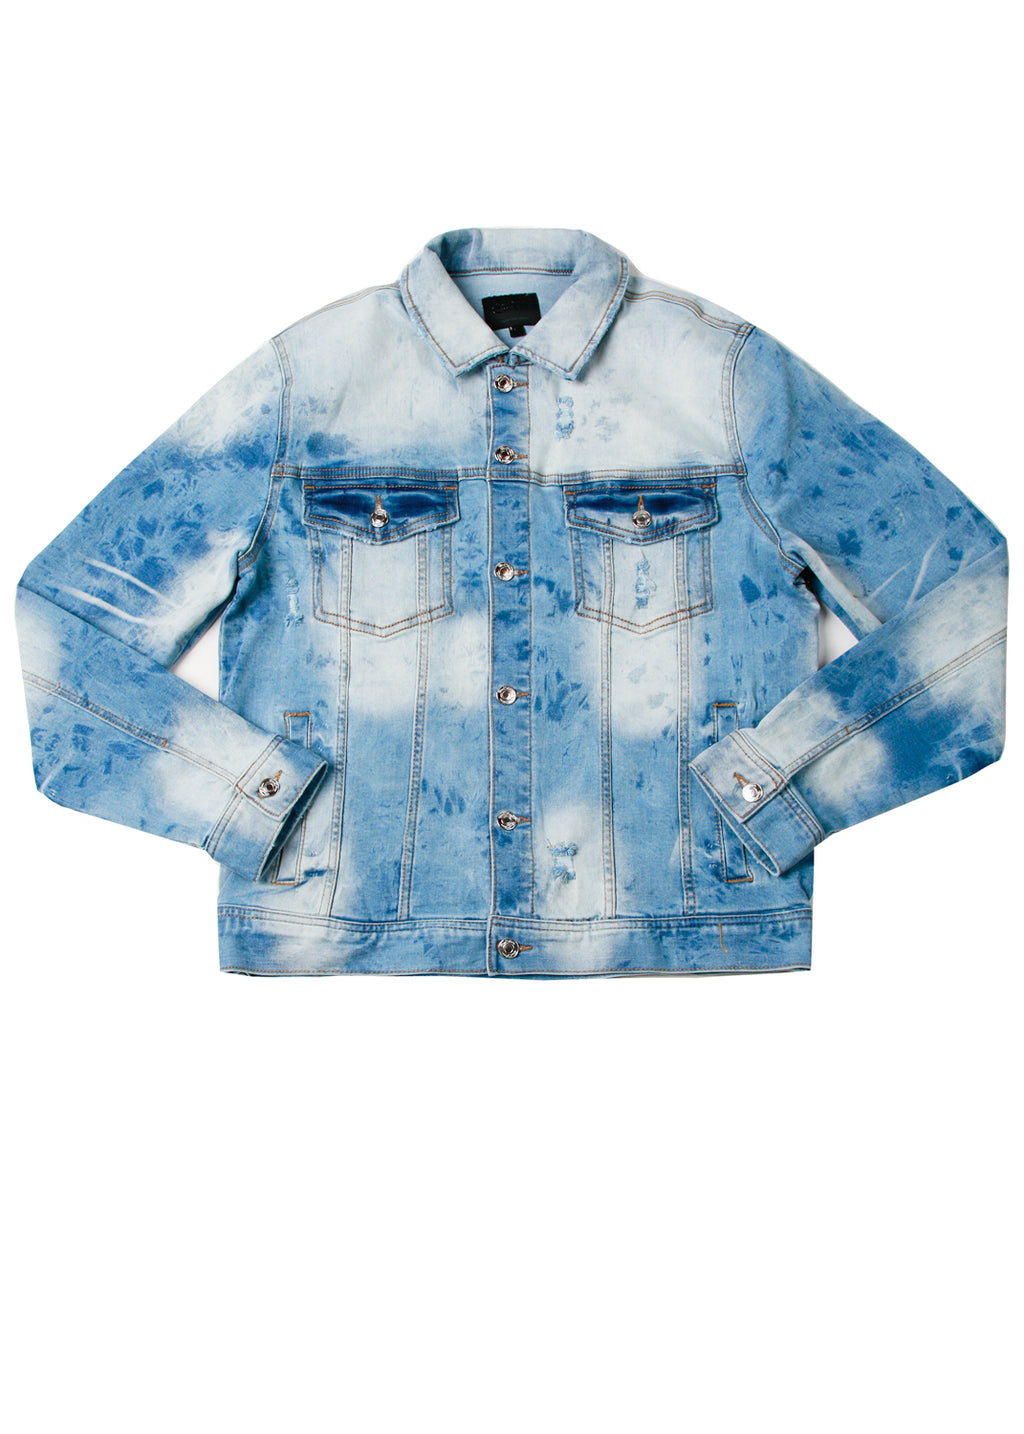 KENNY BLUE DENIM JACKET